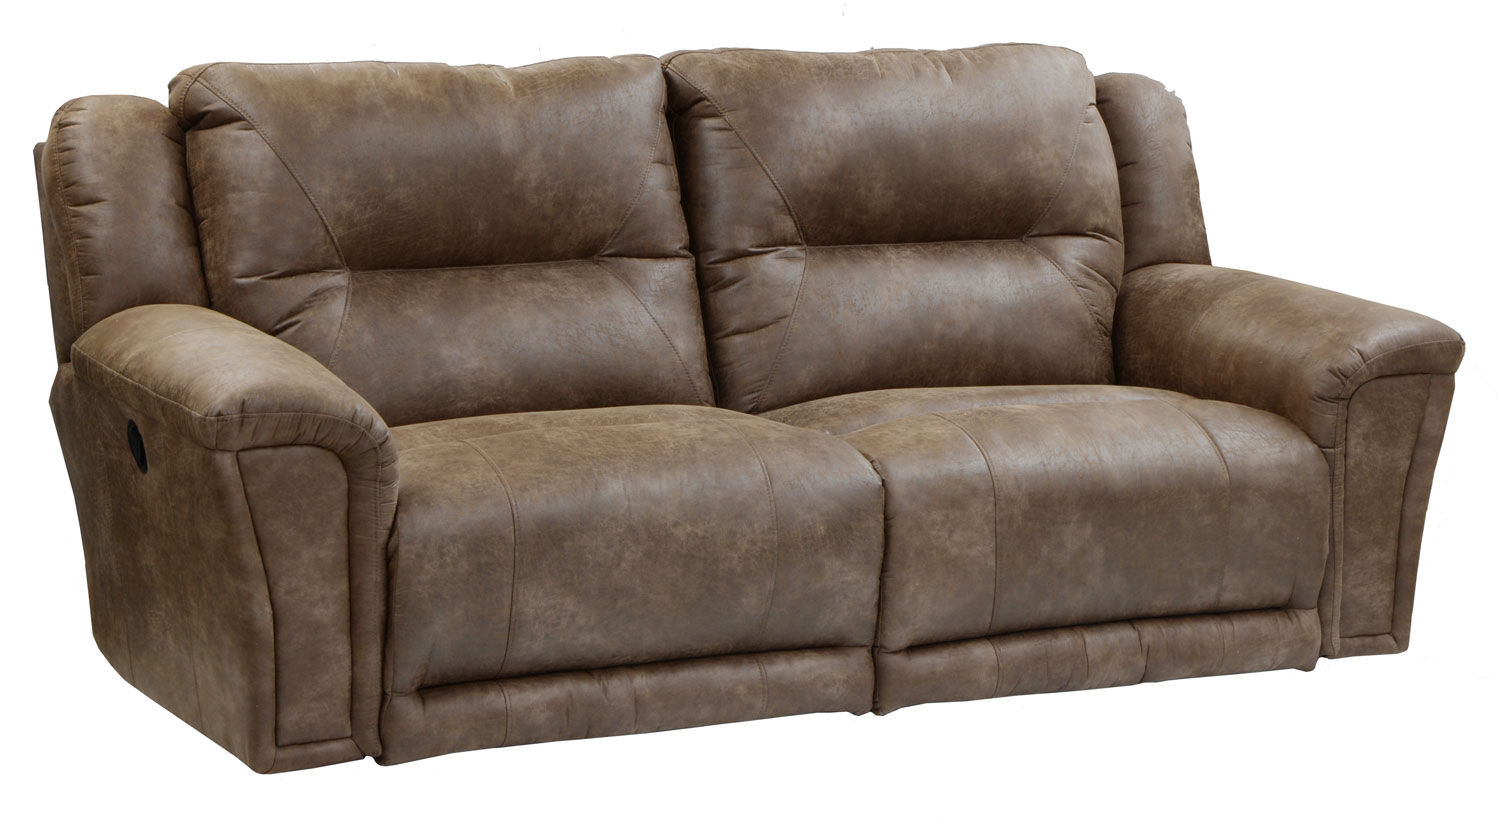 Catnapper collin lay flat reclining sofa set silt 4321 collin sofa set silt Catnapper loveseat recliner